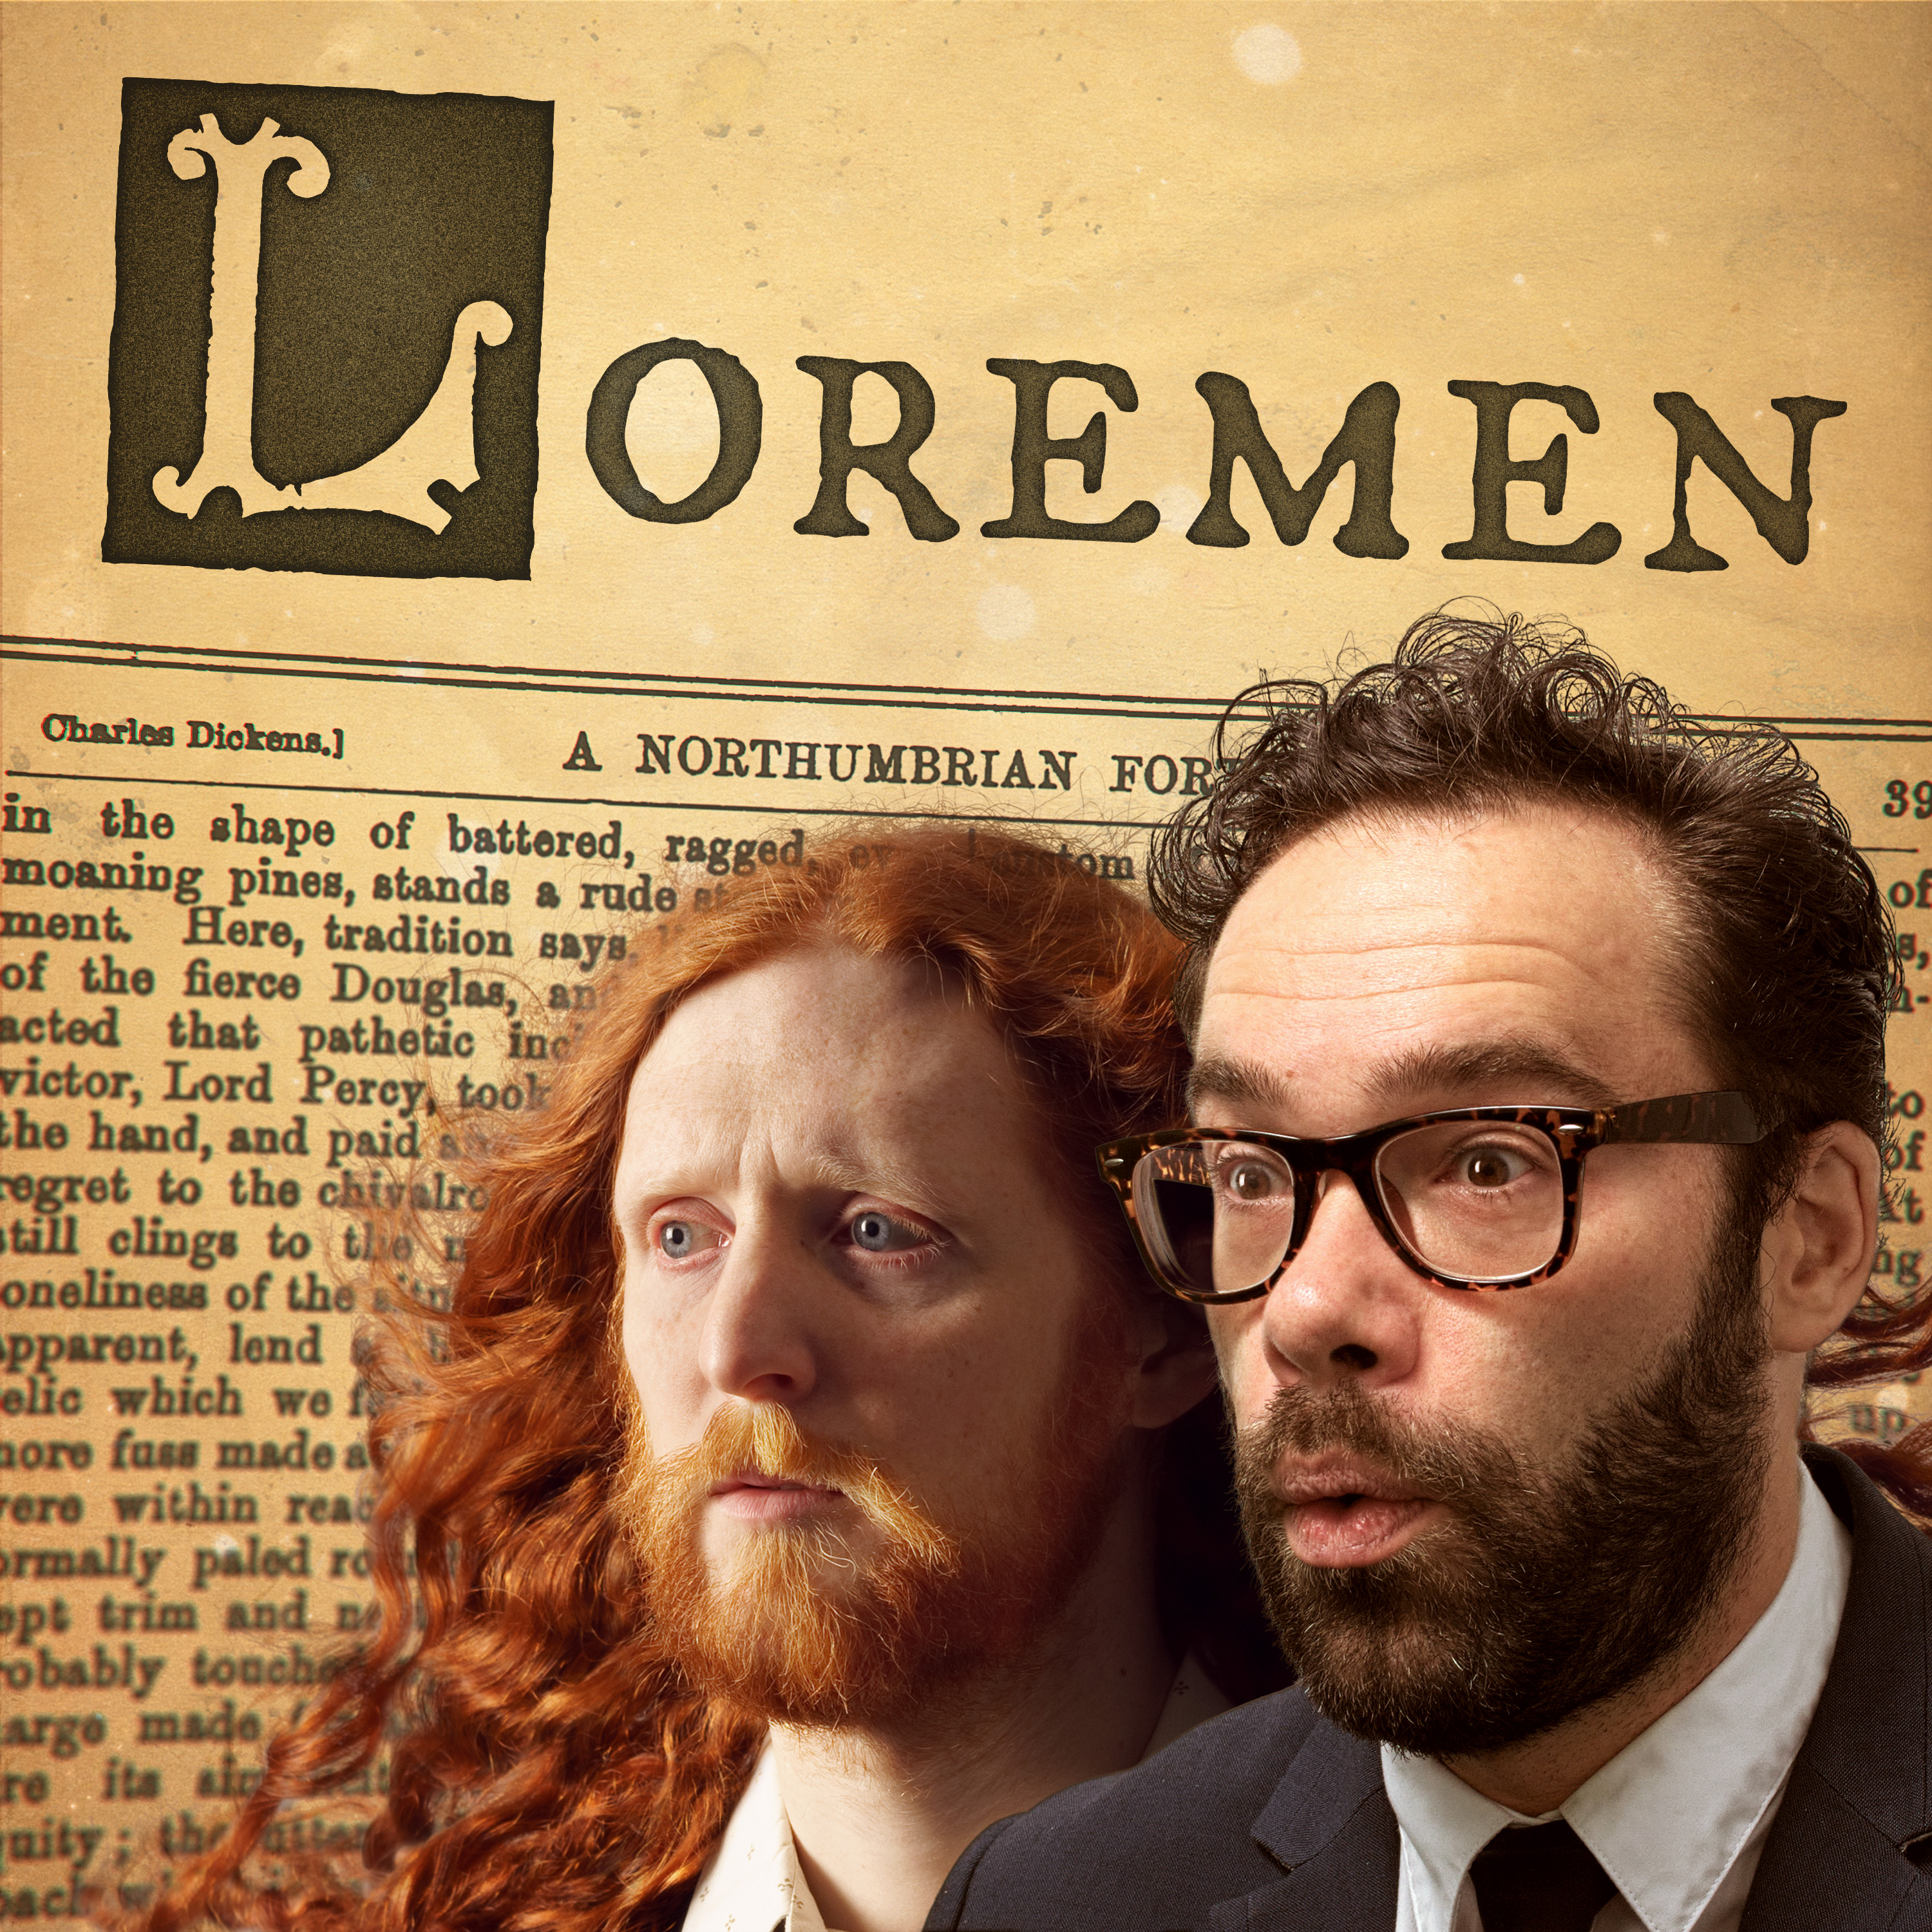 The Loremen Podcast